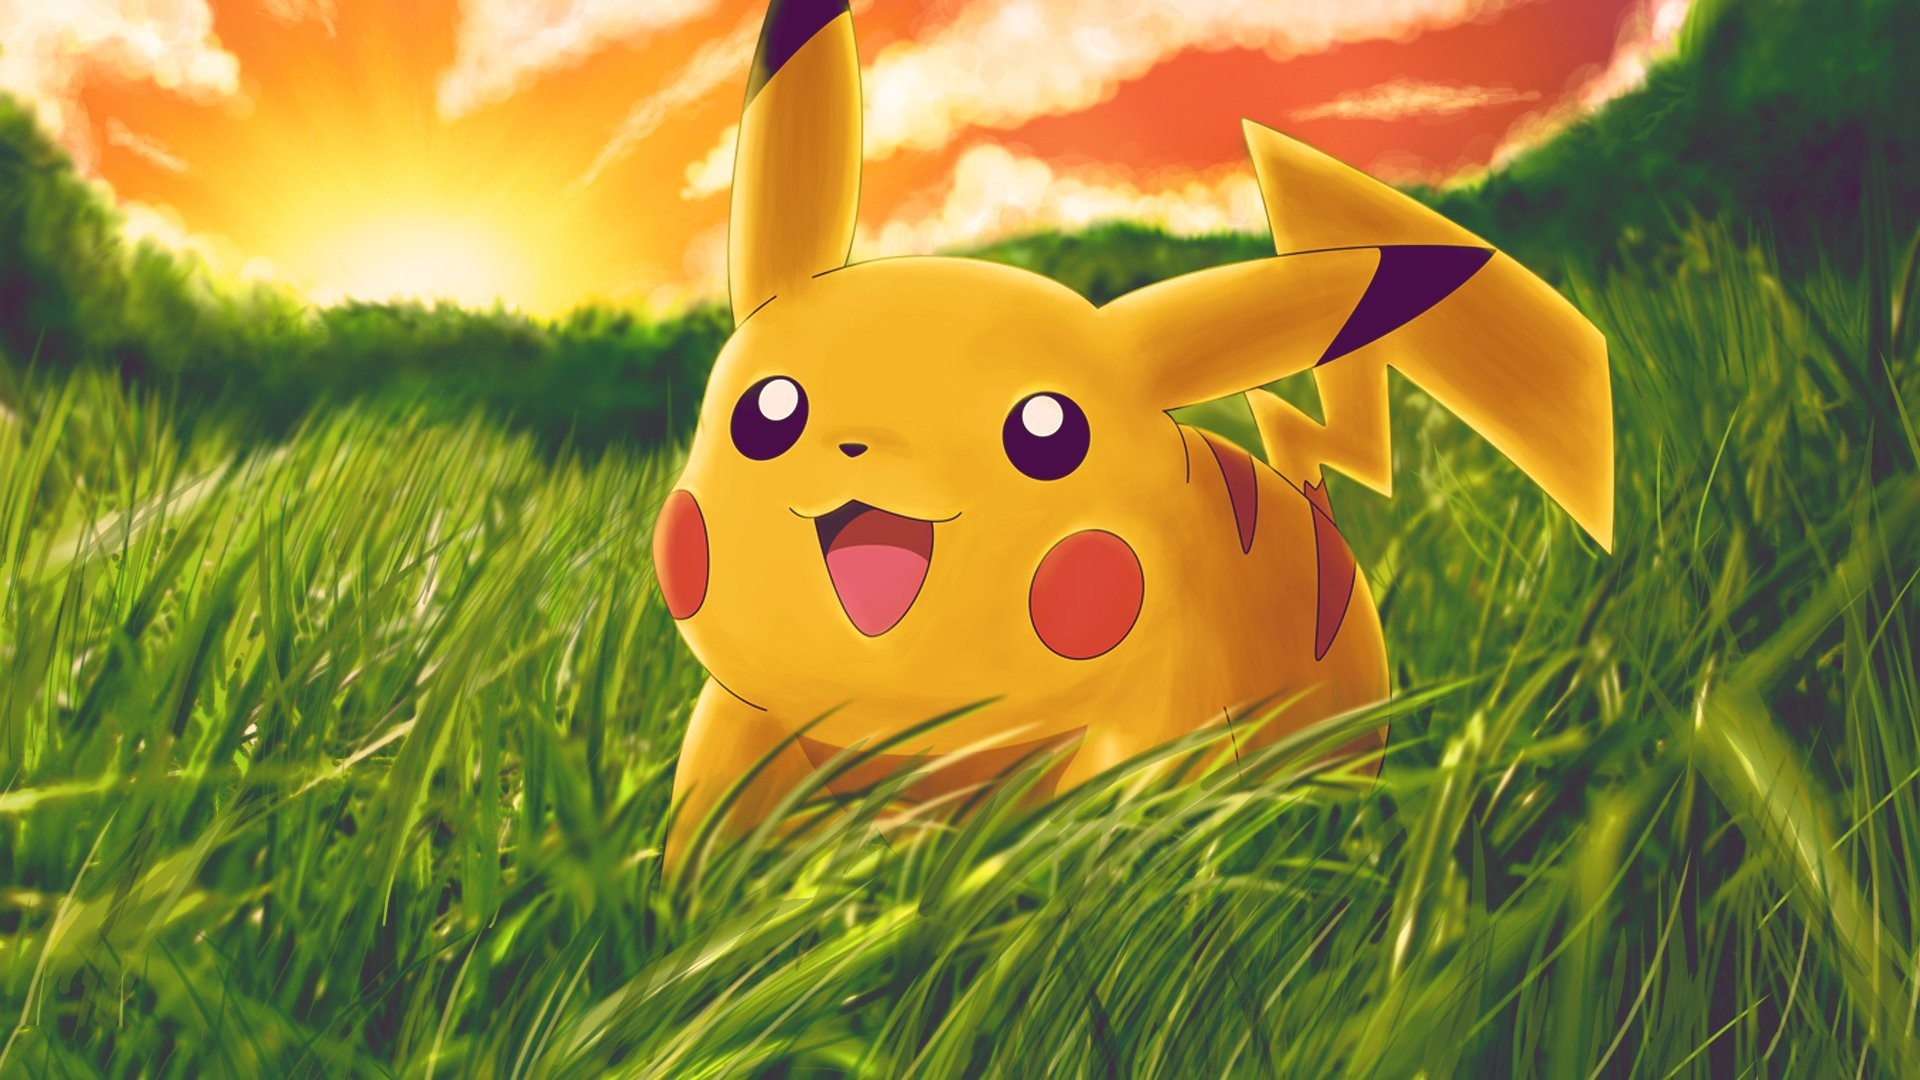 Res: 1920x1080, Pikachu Hd Backgrounds Wallpaper Cute Pokemon For Smartphone Pics